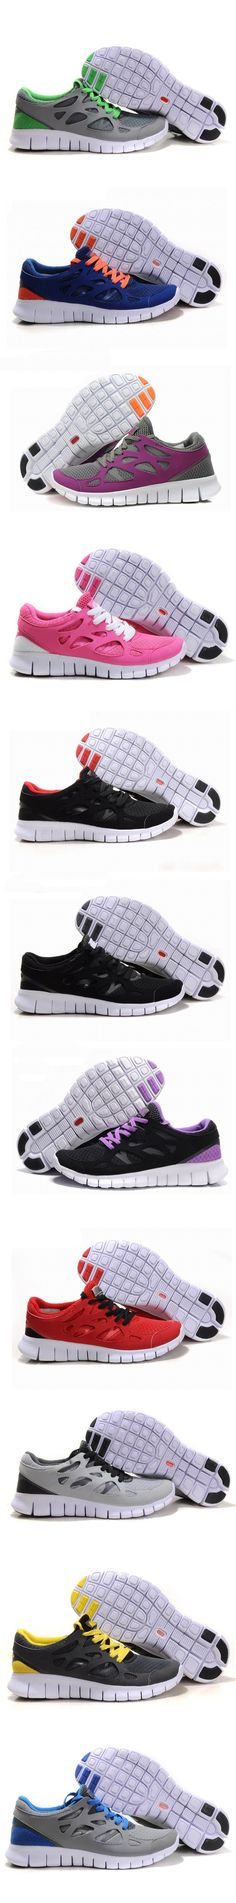 6157cb6dc146 Free Shipping New Arrived Free Run 2.0 Shoes Women Athletic Shoes Sneaker  Sports Shoes